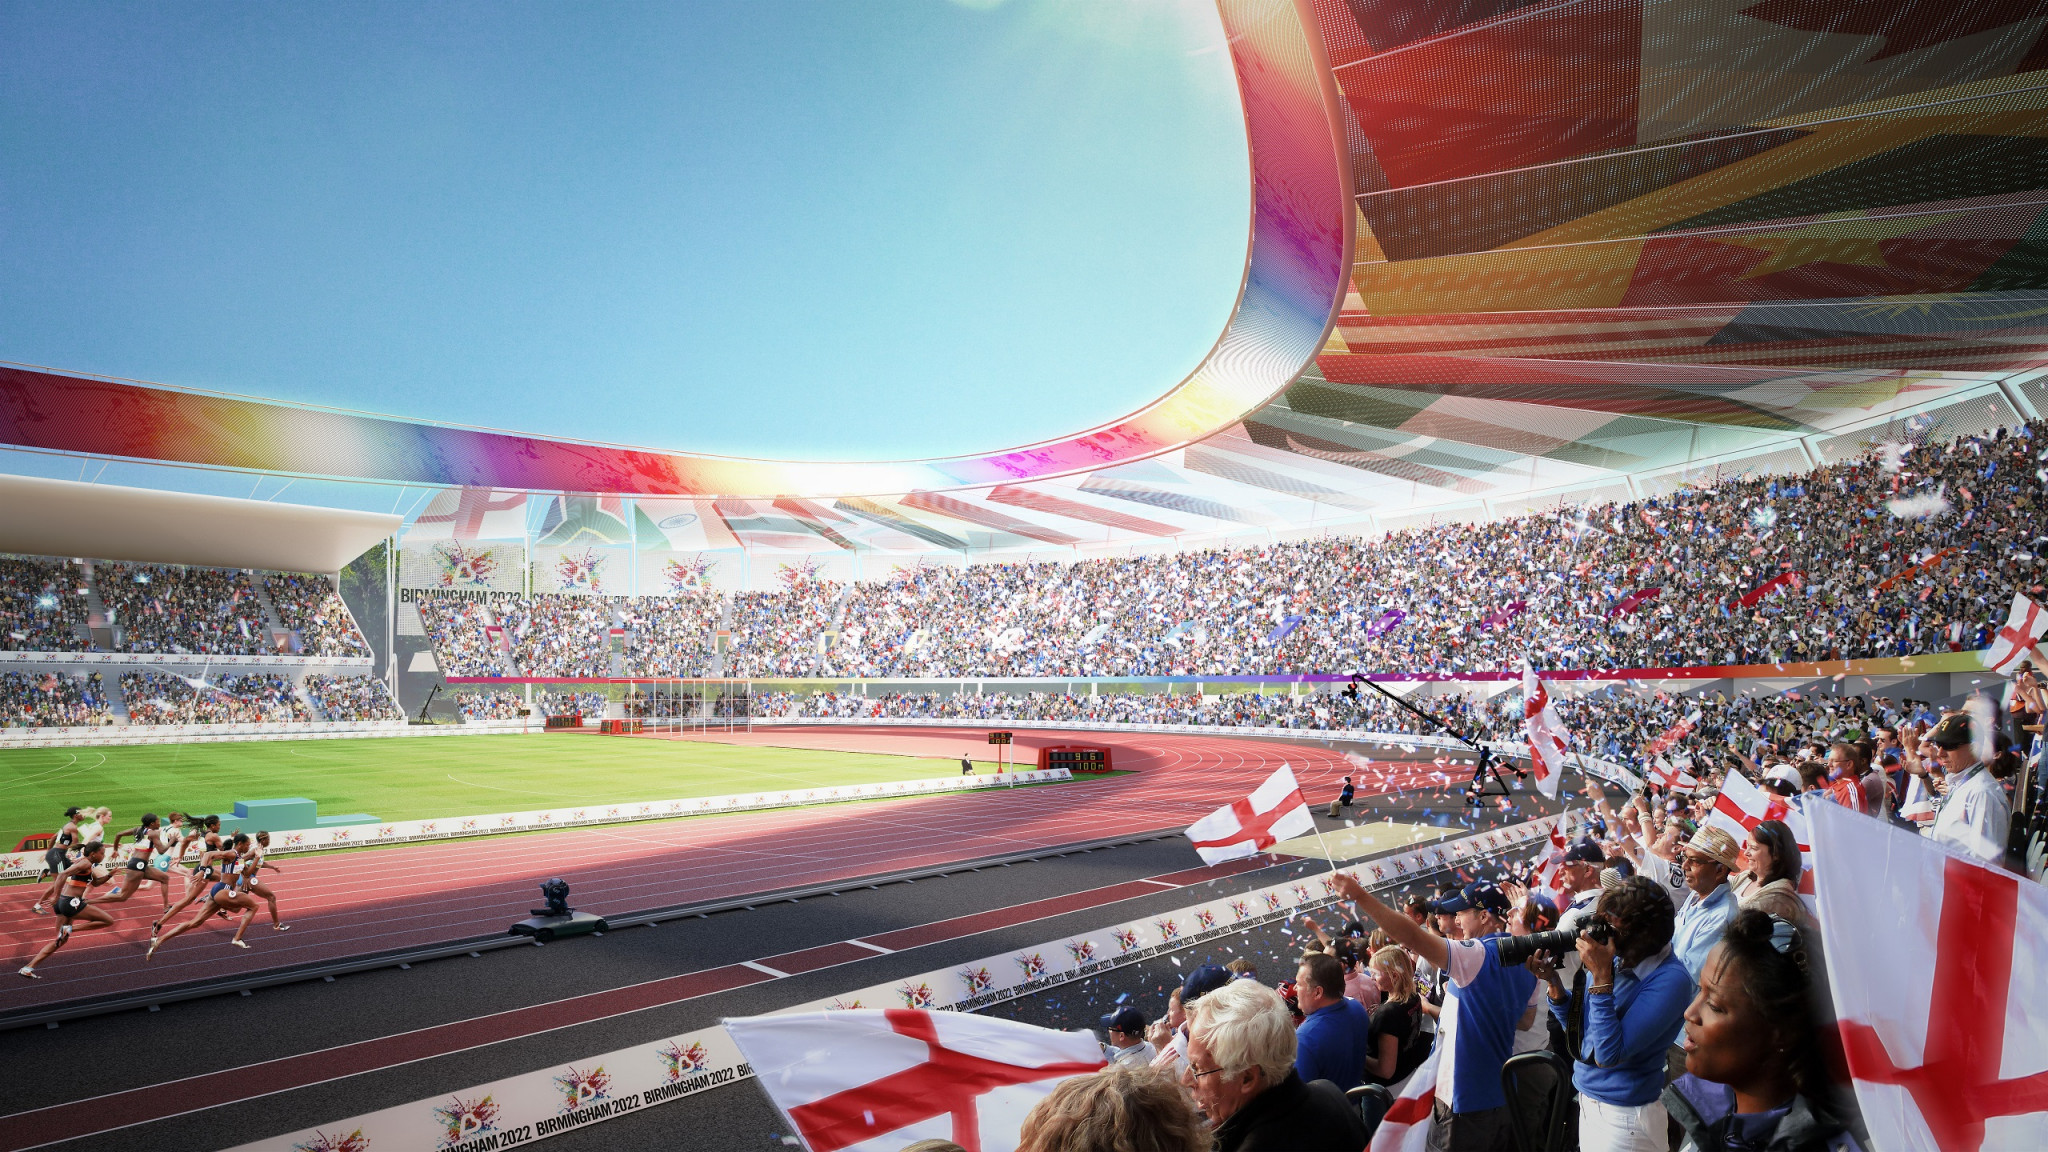 Mace set to project manage Alexander Stadium revamp for Birmingham 2022 Commonwealth Games